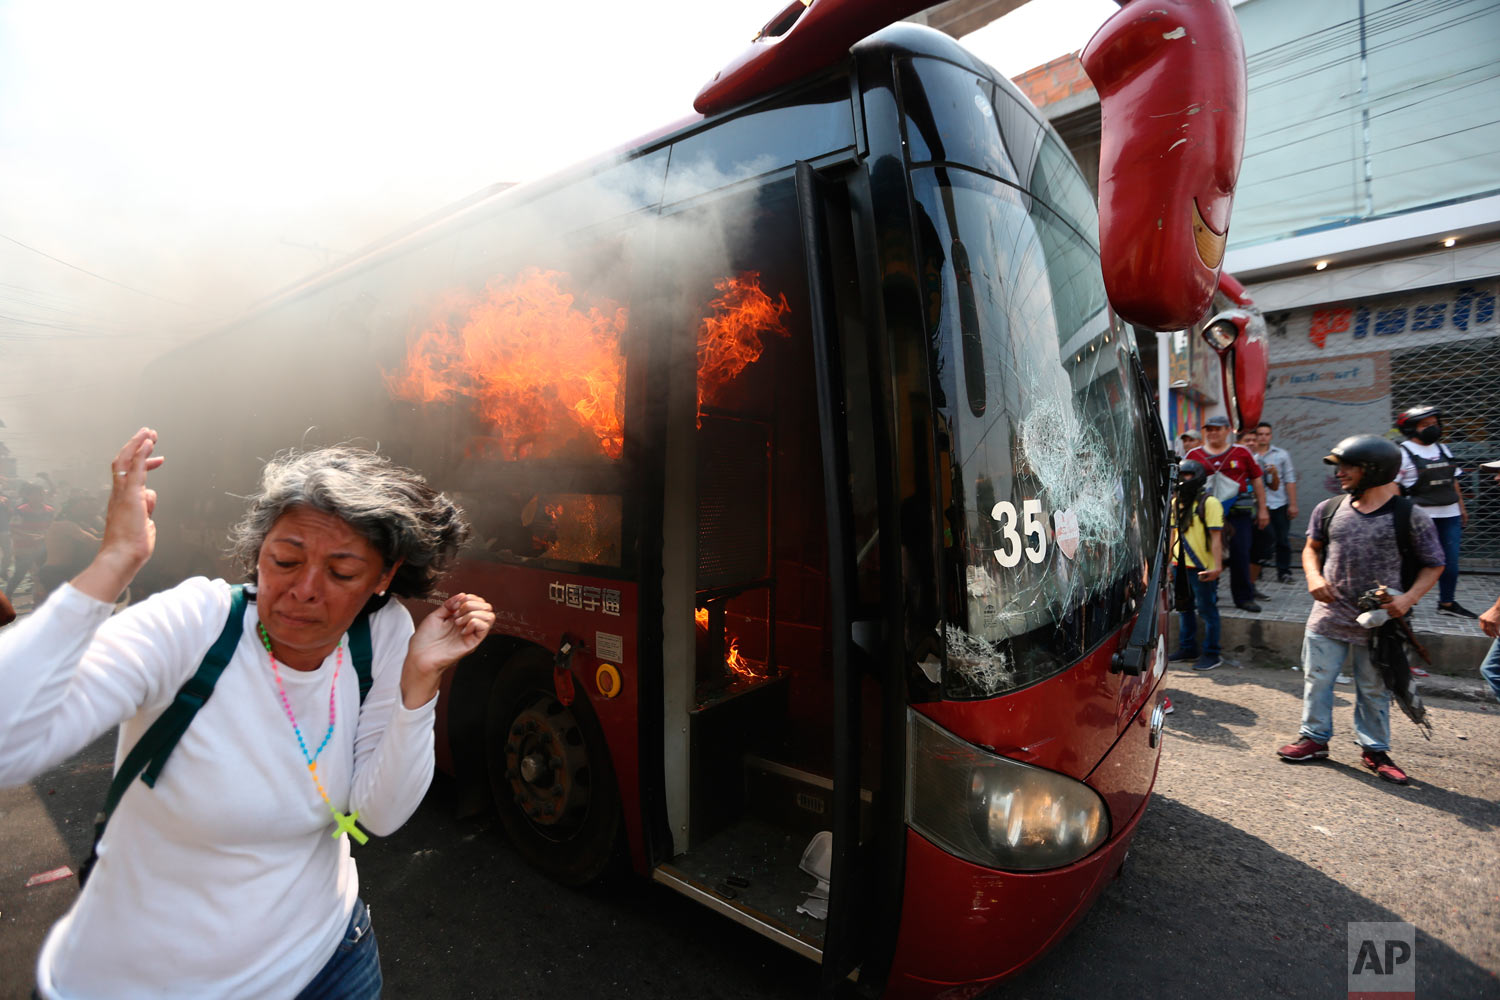 A woman moves away from the flames of a burning bus after it was pushed away during clashes with the Venezuelan Bolivarian National Guard in Urena, Venezuela, near the border with Colombia, Saturday, Feb. 23, 2019. (AP Photo/Fernando Llano)